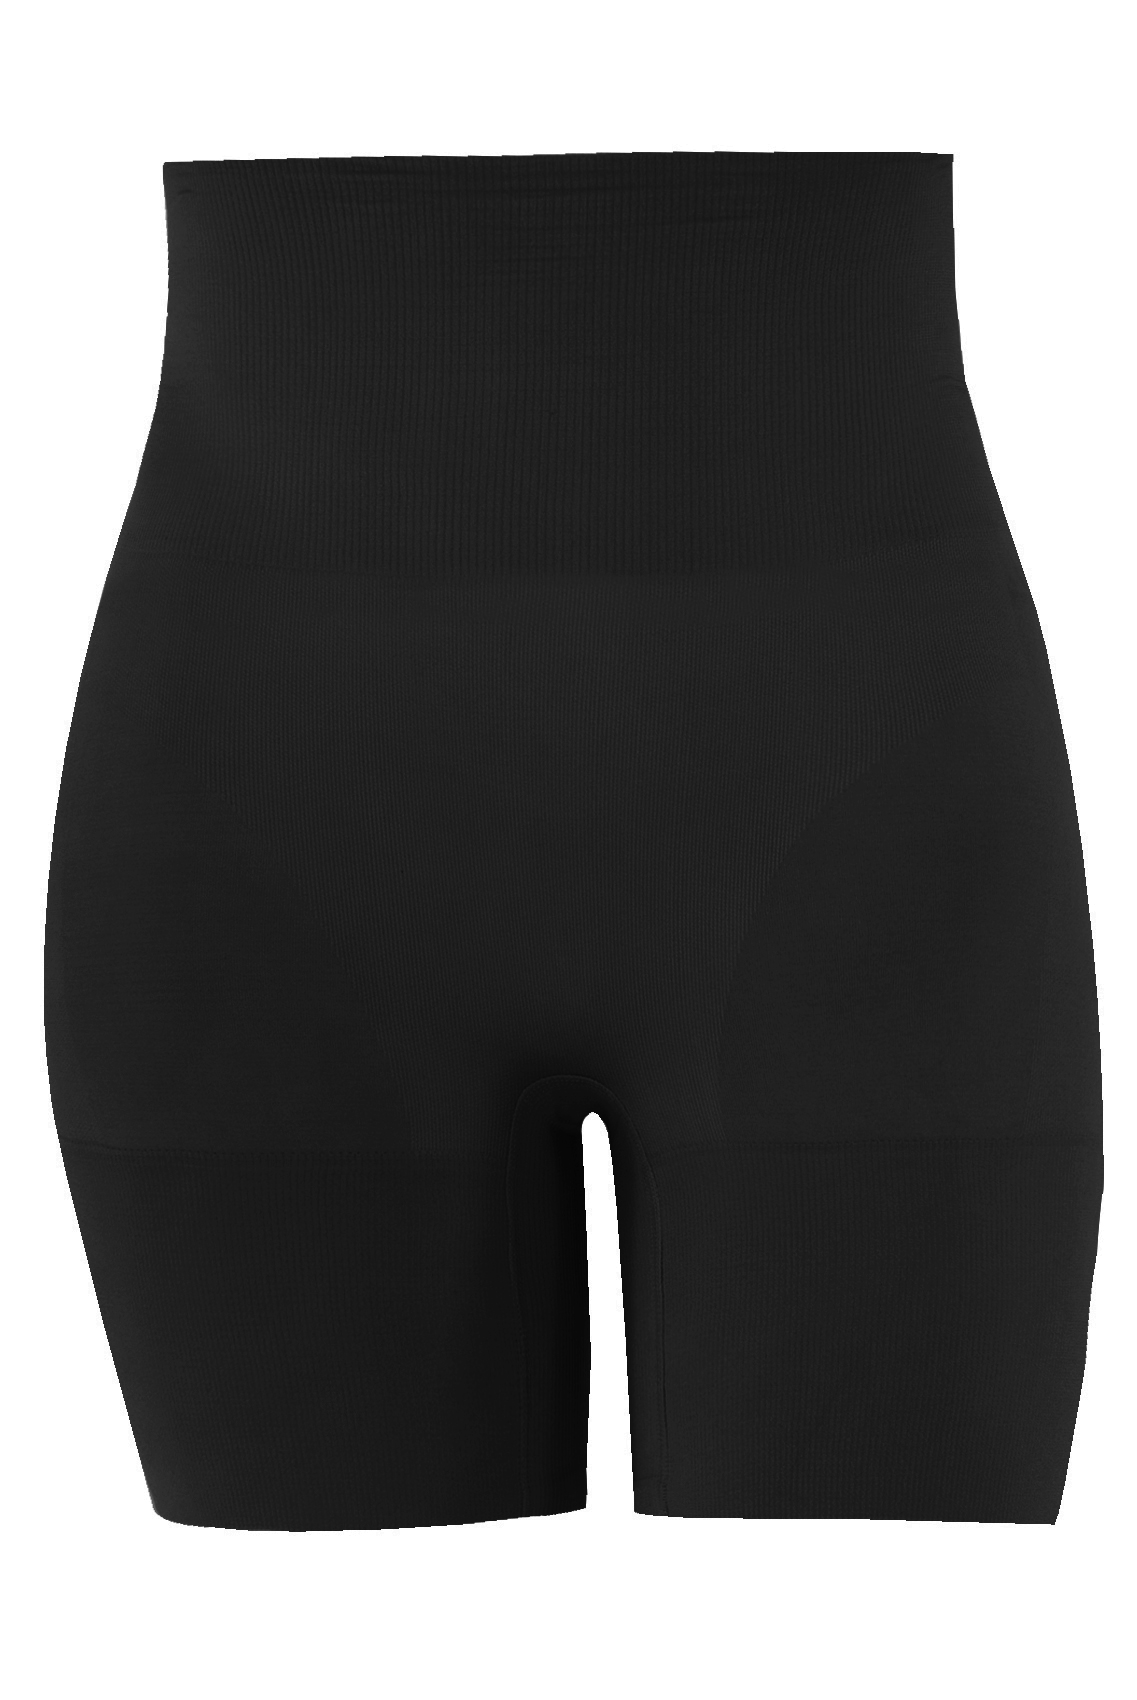 Firm Control Black Seamfree Shaper Short Plus Size 16 To 32-4623